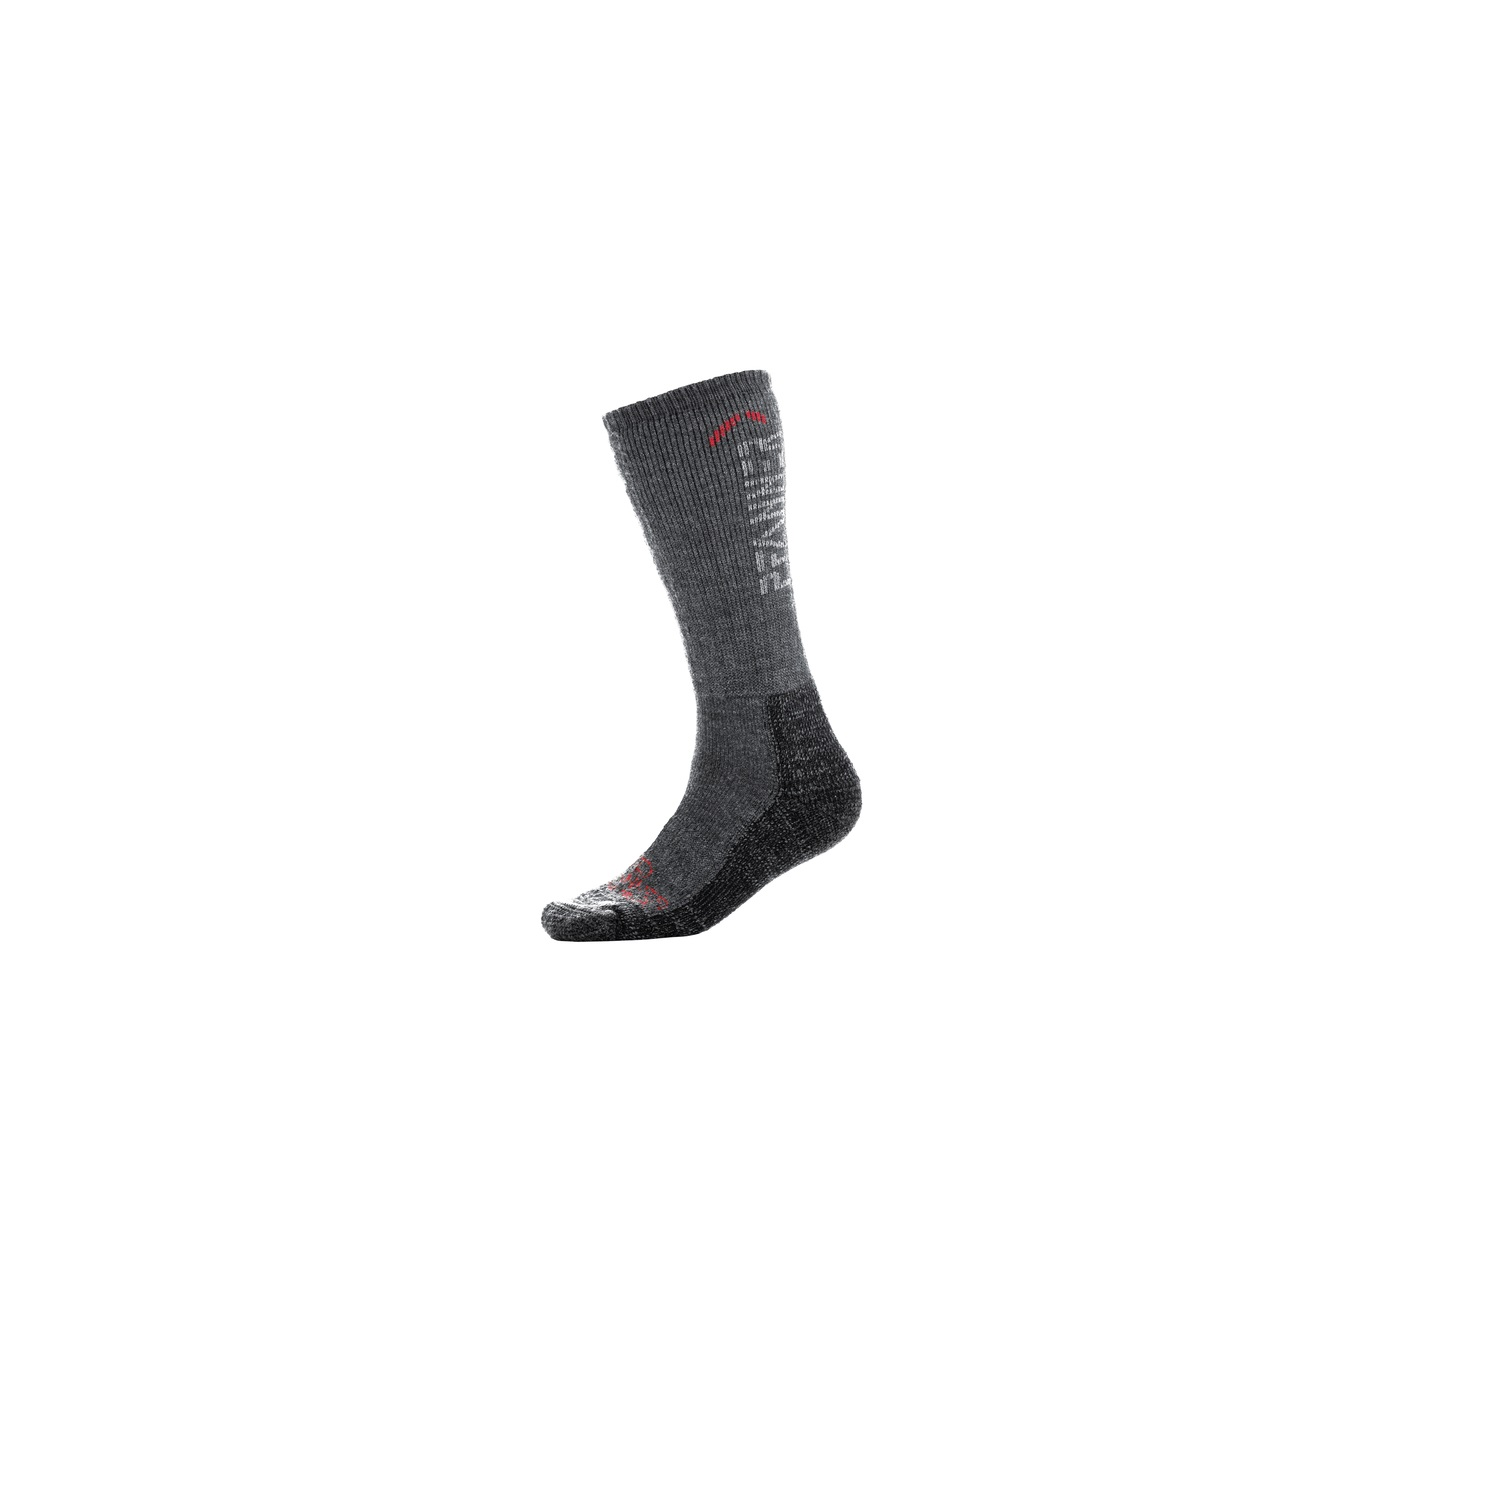 Business & Industrie Ehrgeizig Pfanner Merino Thermosocken